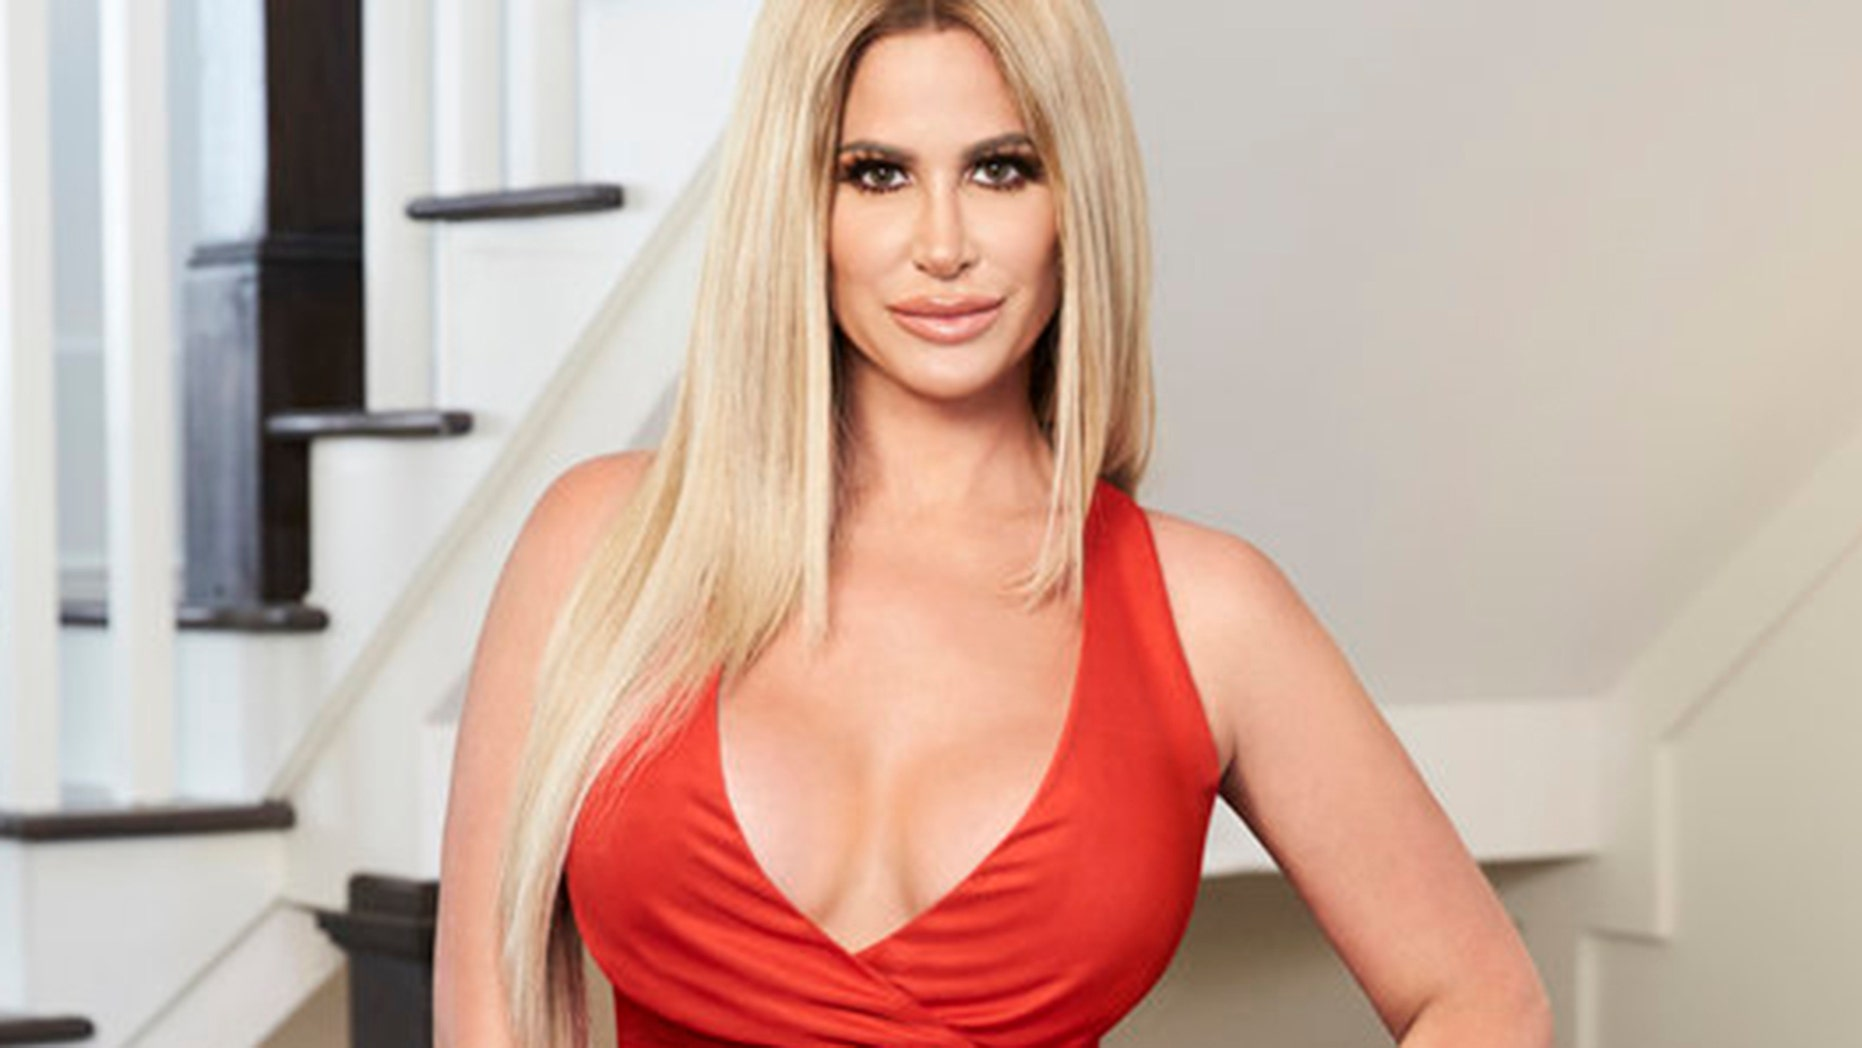 Kim Zolciak asked her fans for help to decide on whether she should have her implants removed for a smaller size.